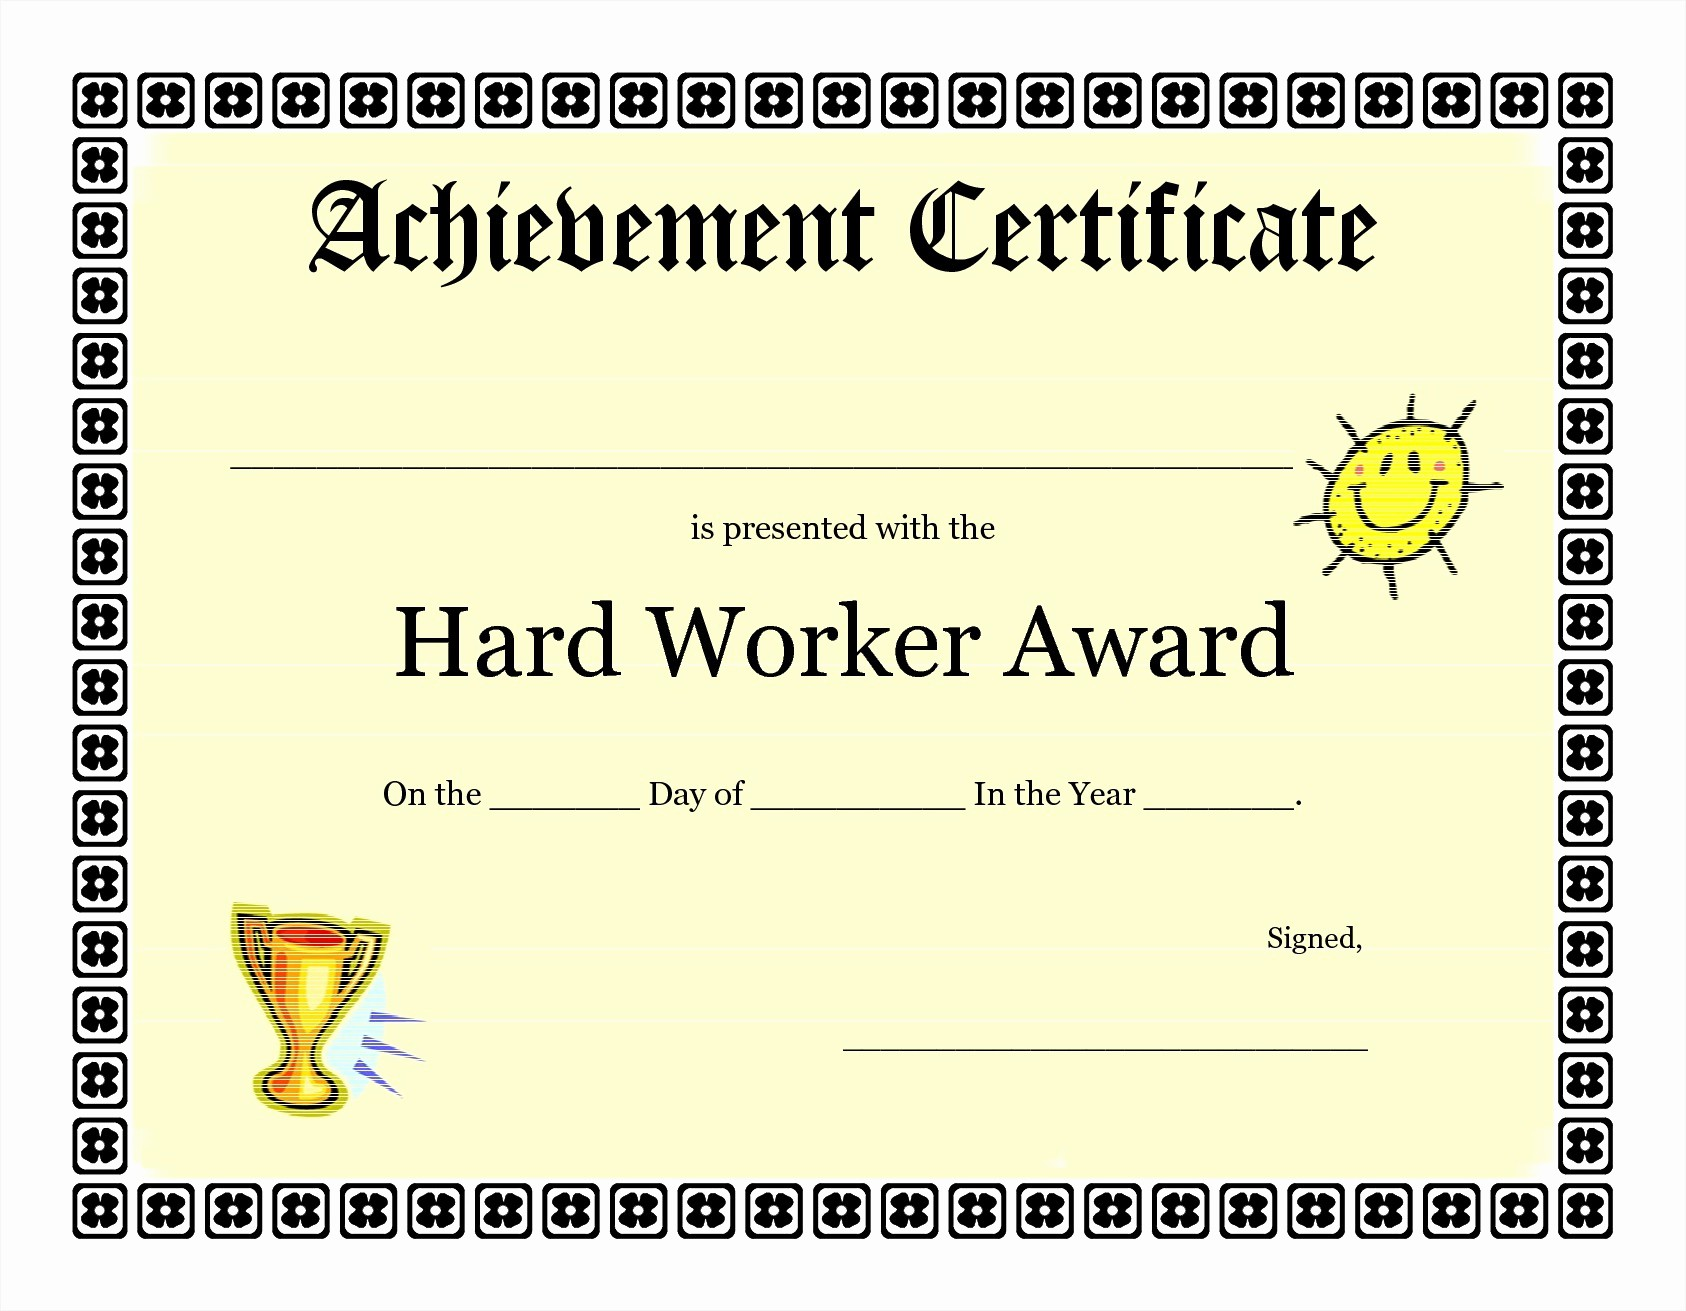 Free Downloadable Award Certificate Templates Unique Achievement Certificate Templates Free Mughals